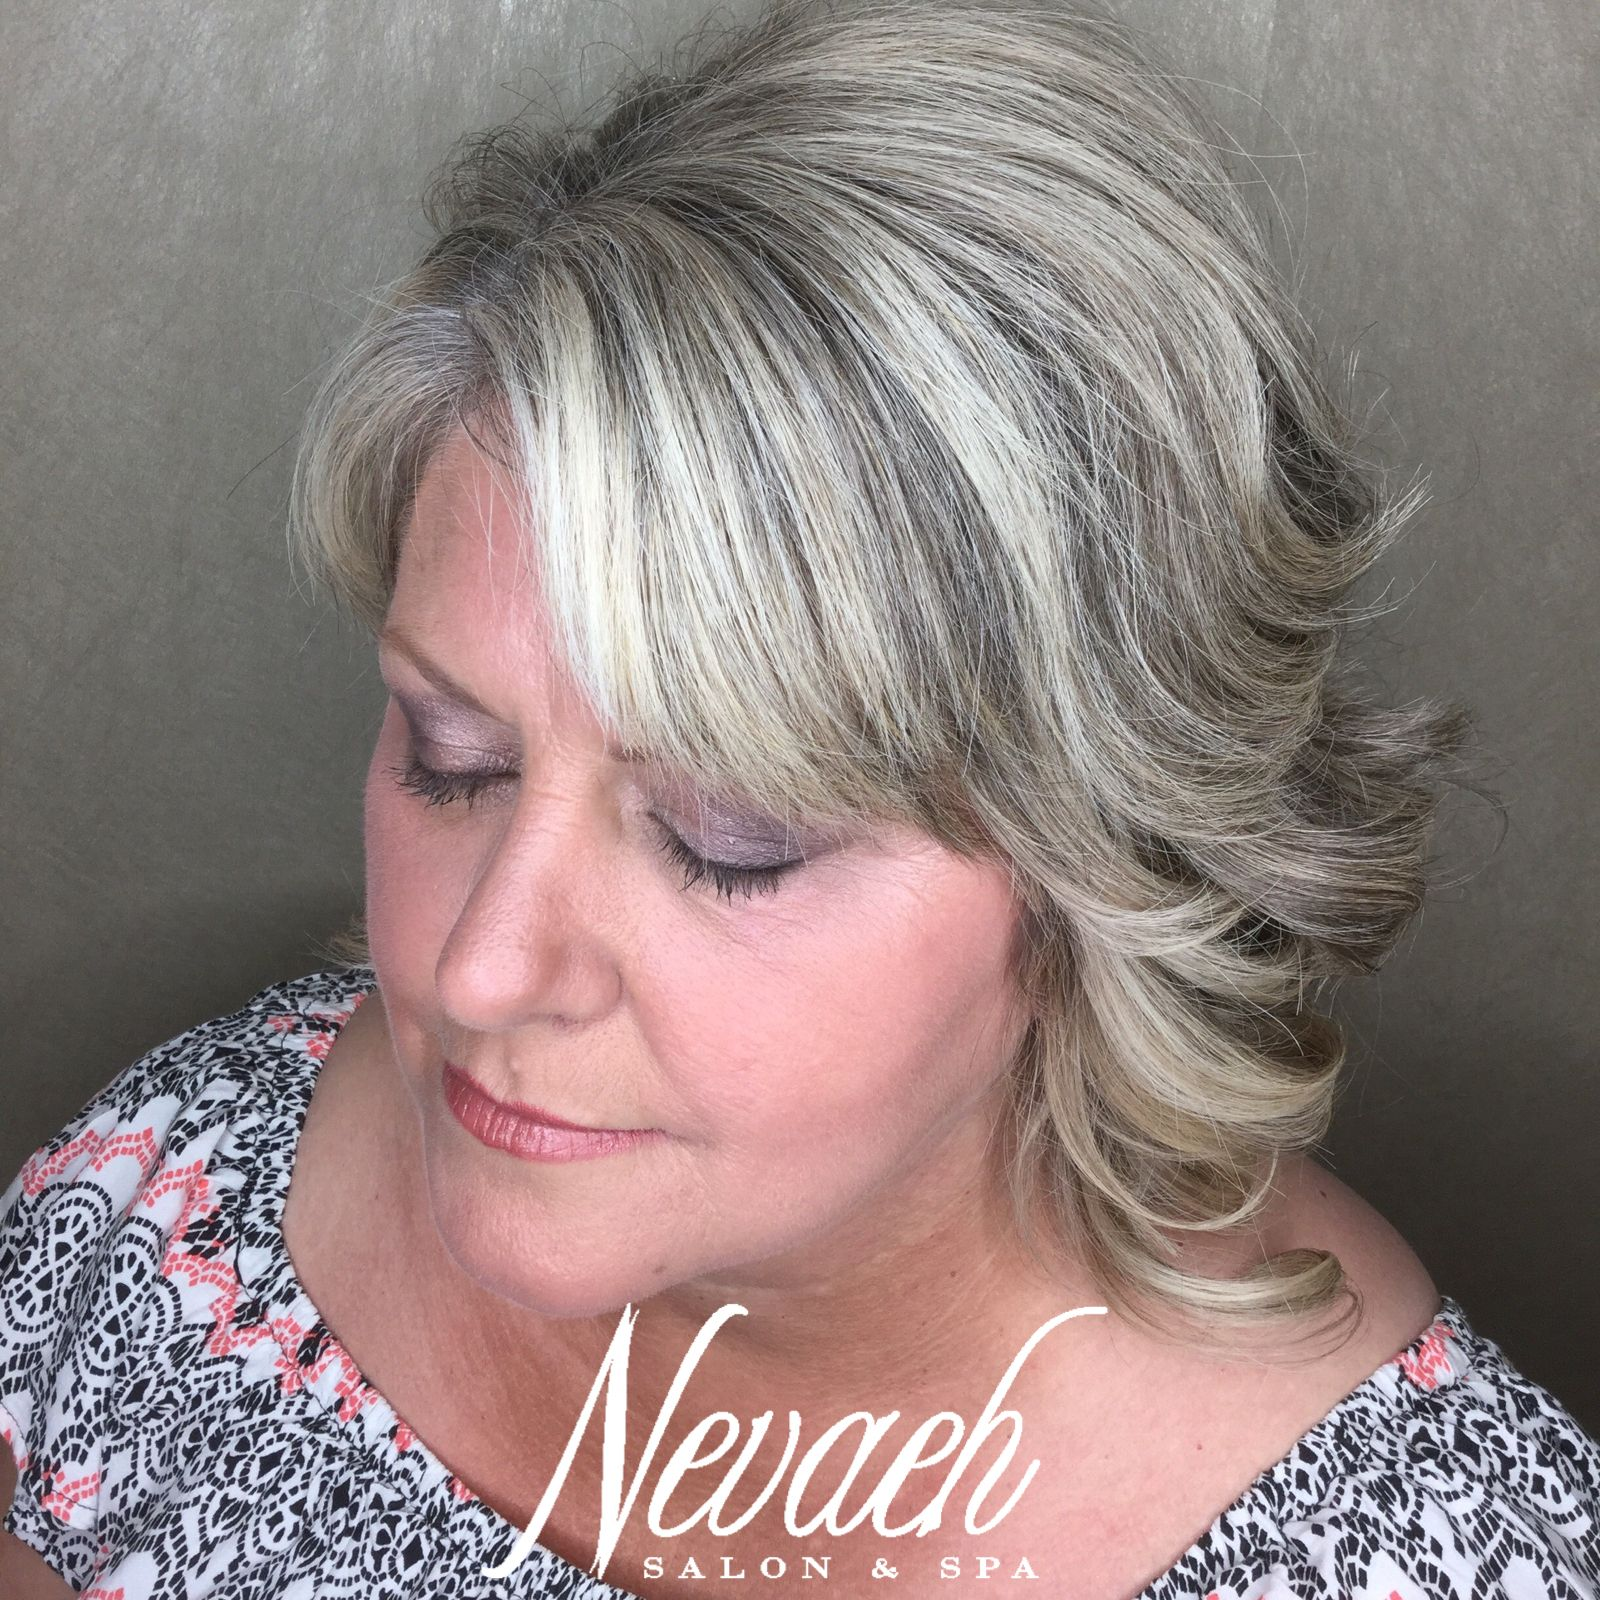 Beautiful Mother Of The Bride Makeup Application By Michelle #Nevaehsalonspa